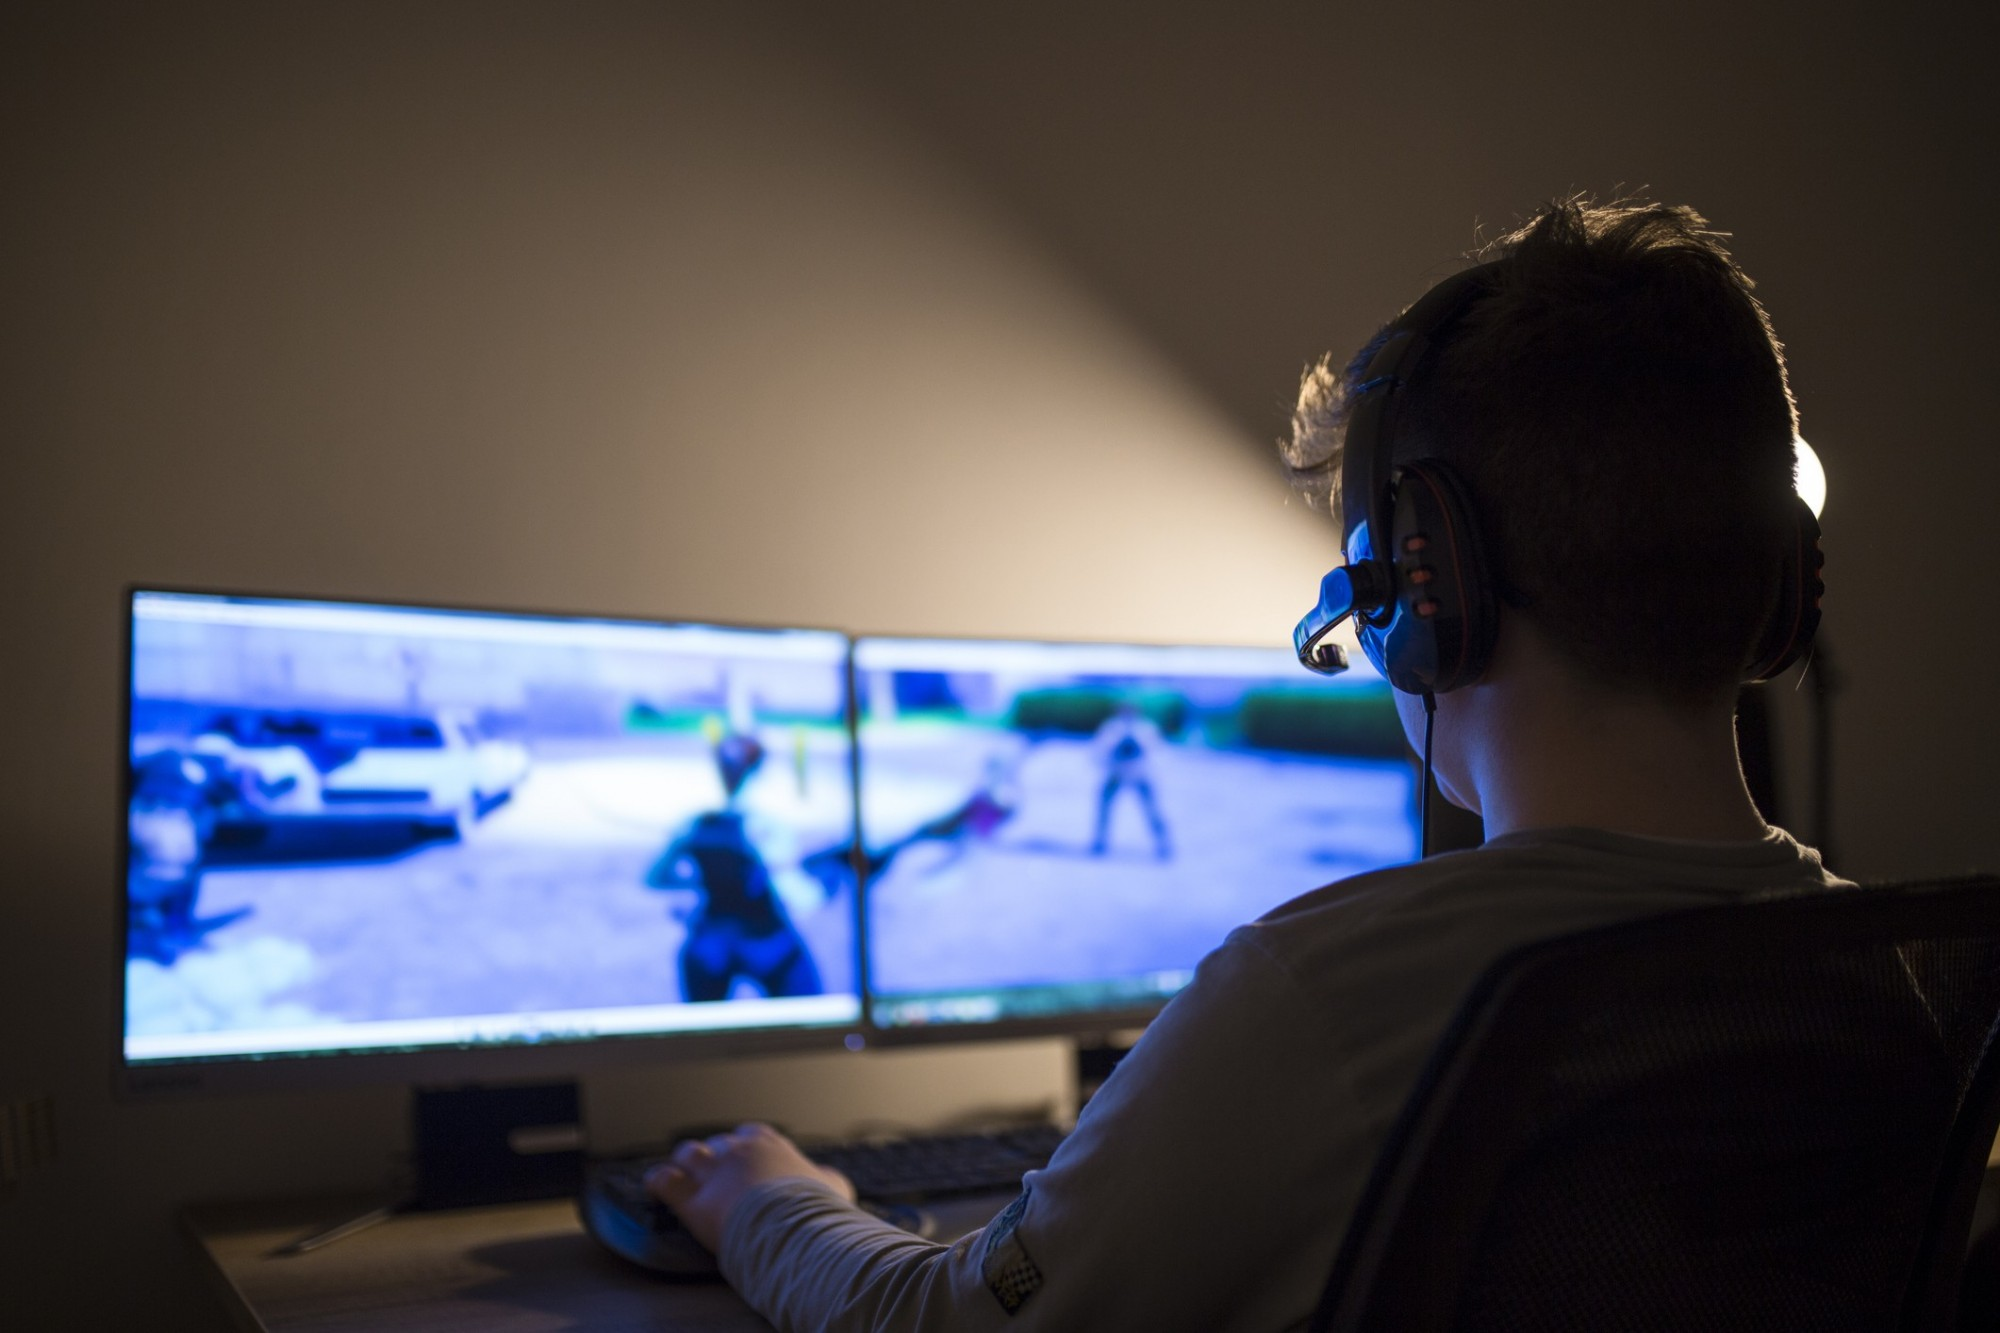 Gamer sat in front of a dual screen moniter playing a 3rd person game